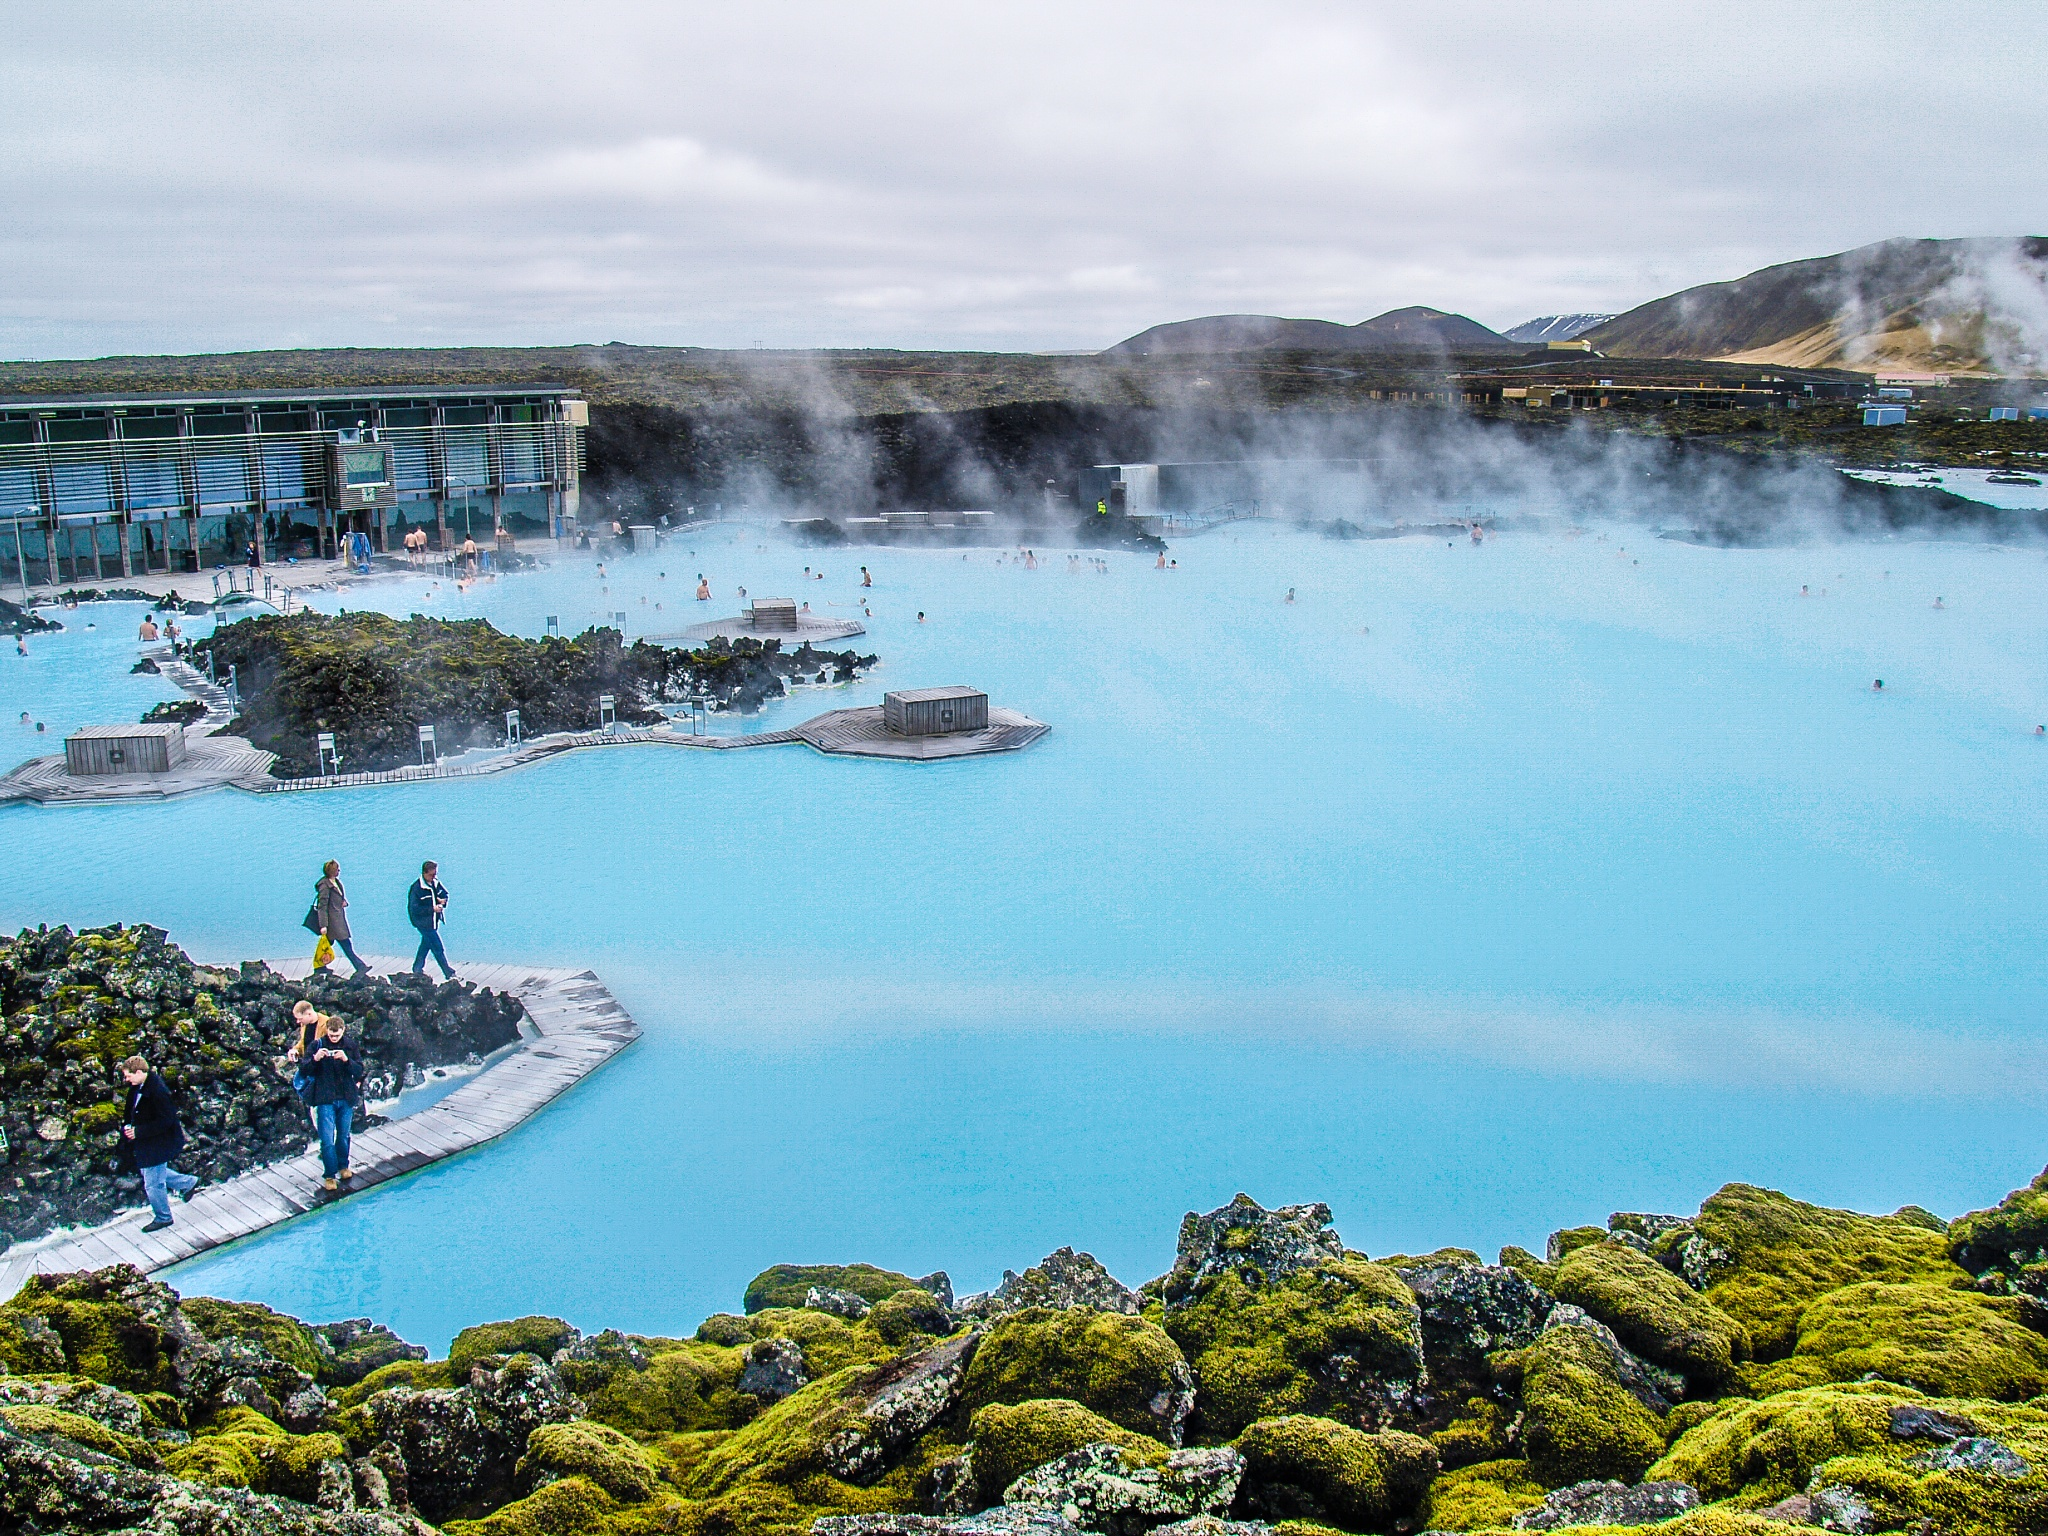 The Blue Lagoon by geirole